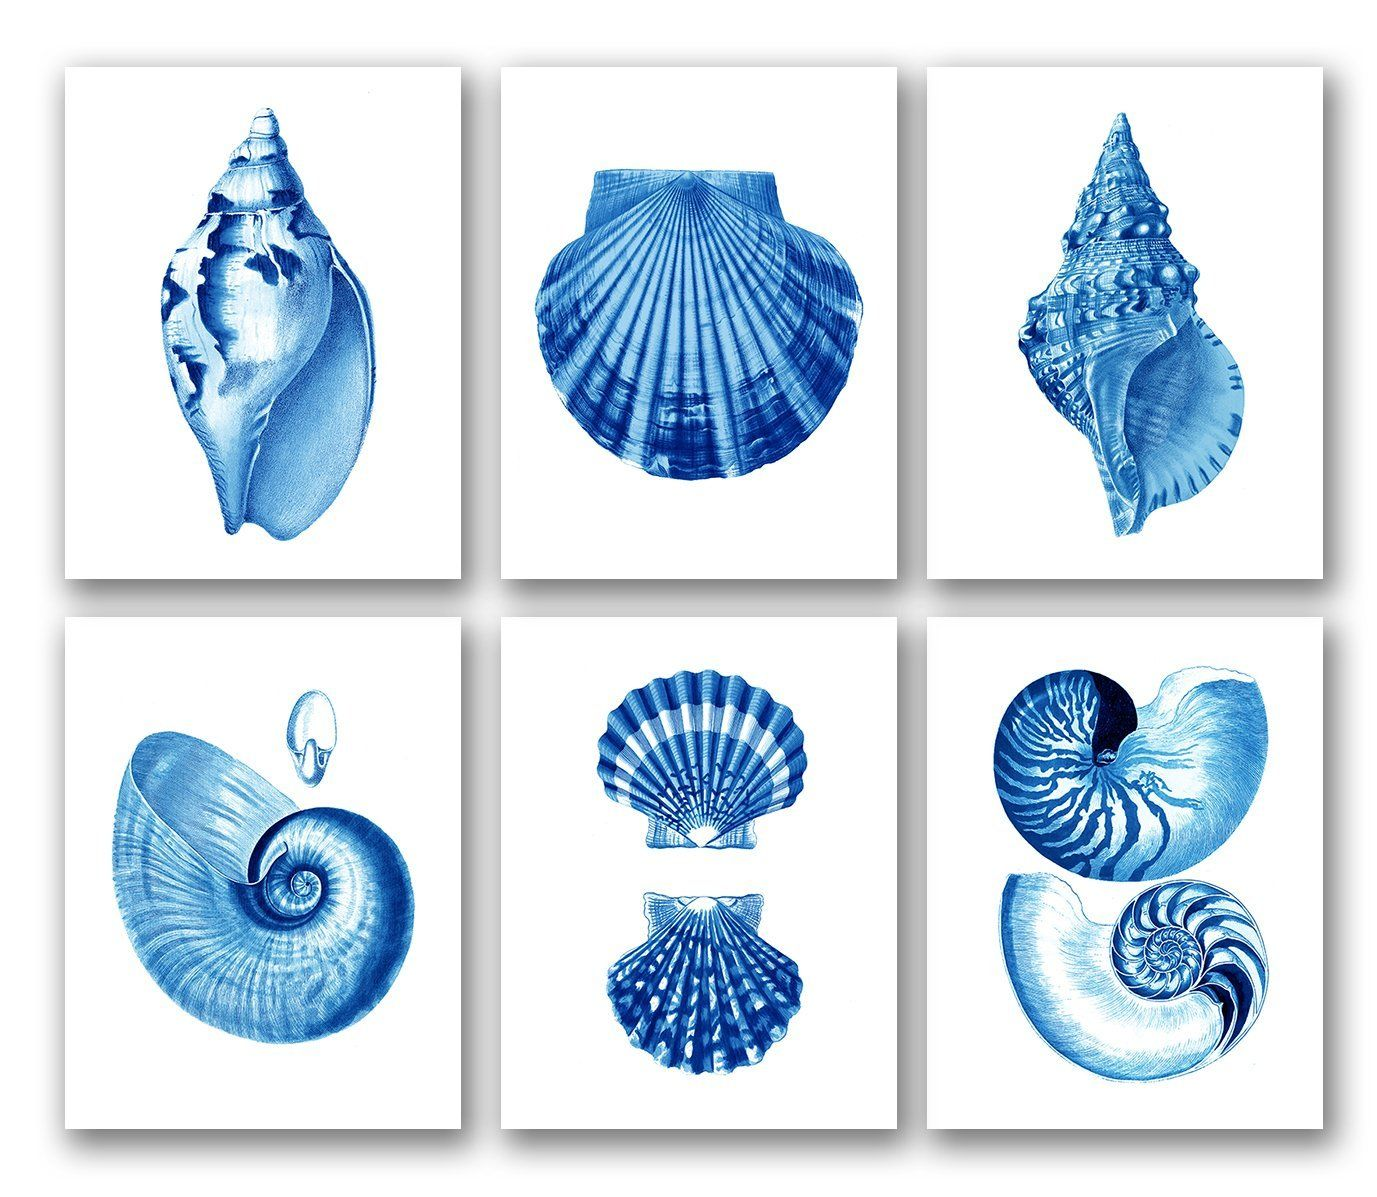 Amazon.com: Blue Seashells Decor Art Prints Set of 6 unframed Beach Coastal Decor Wall Art: Posters & Prints UNFRAMED  $44.00